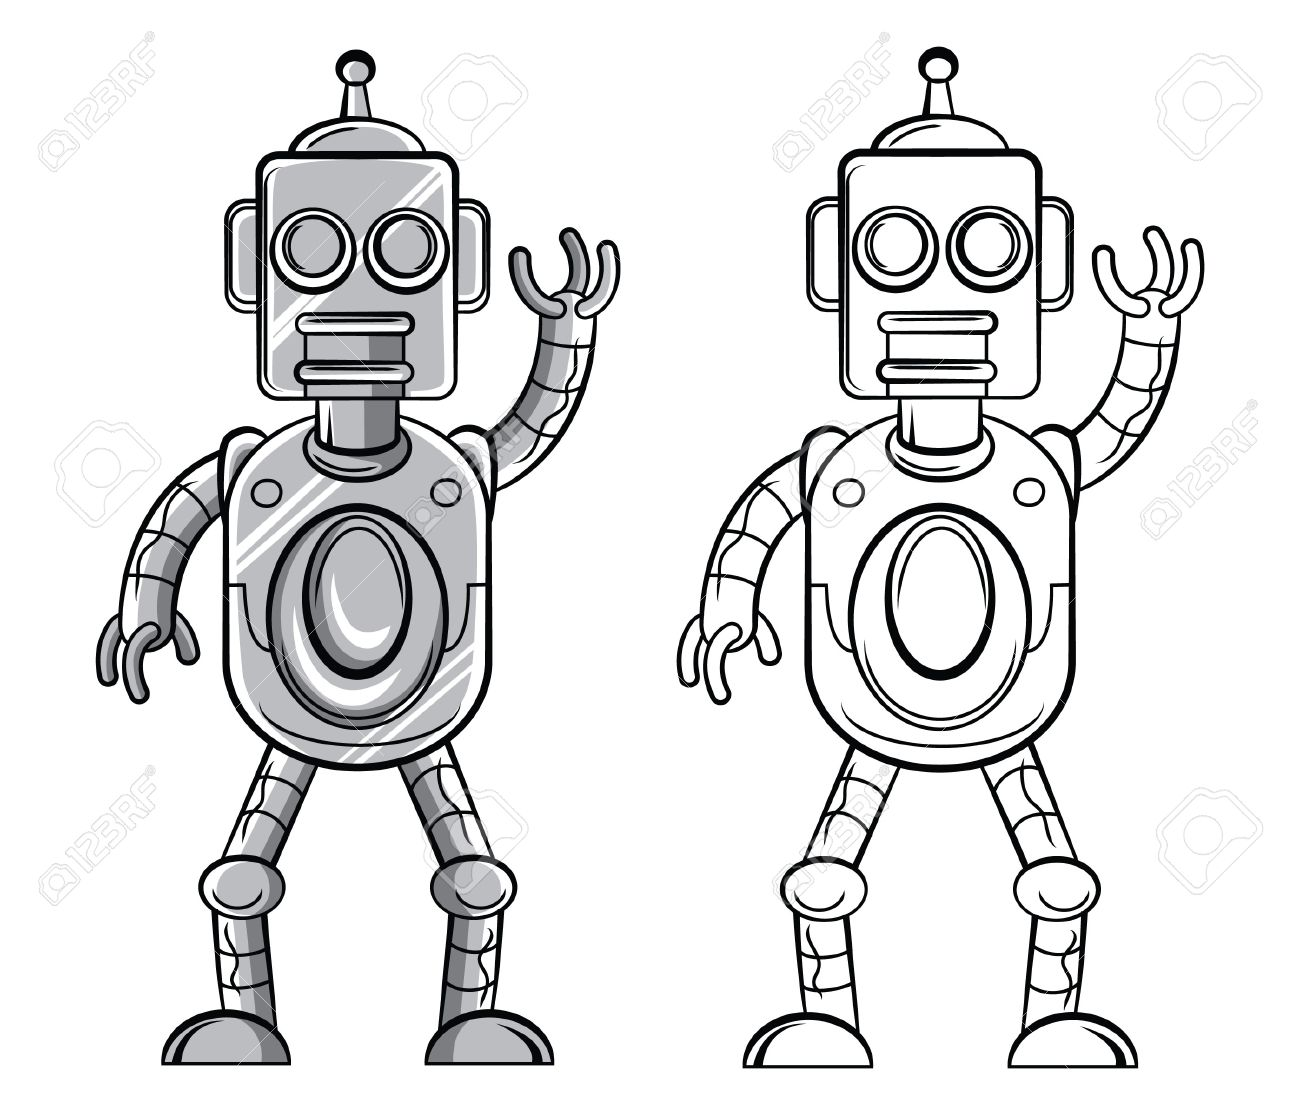 Coloring Book Robot Cartoon Character Stock Vector